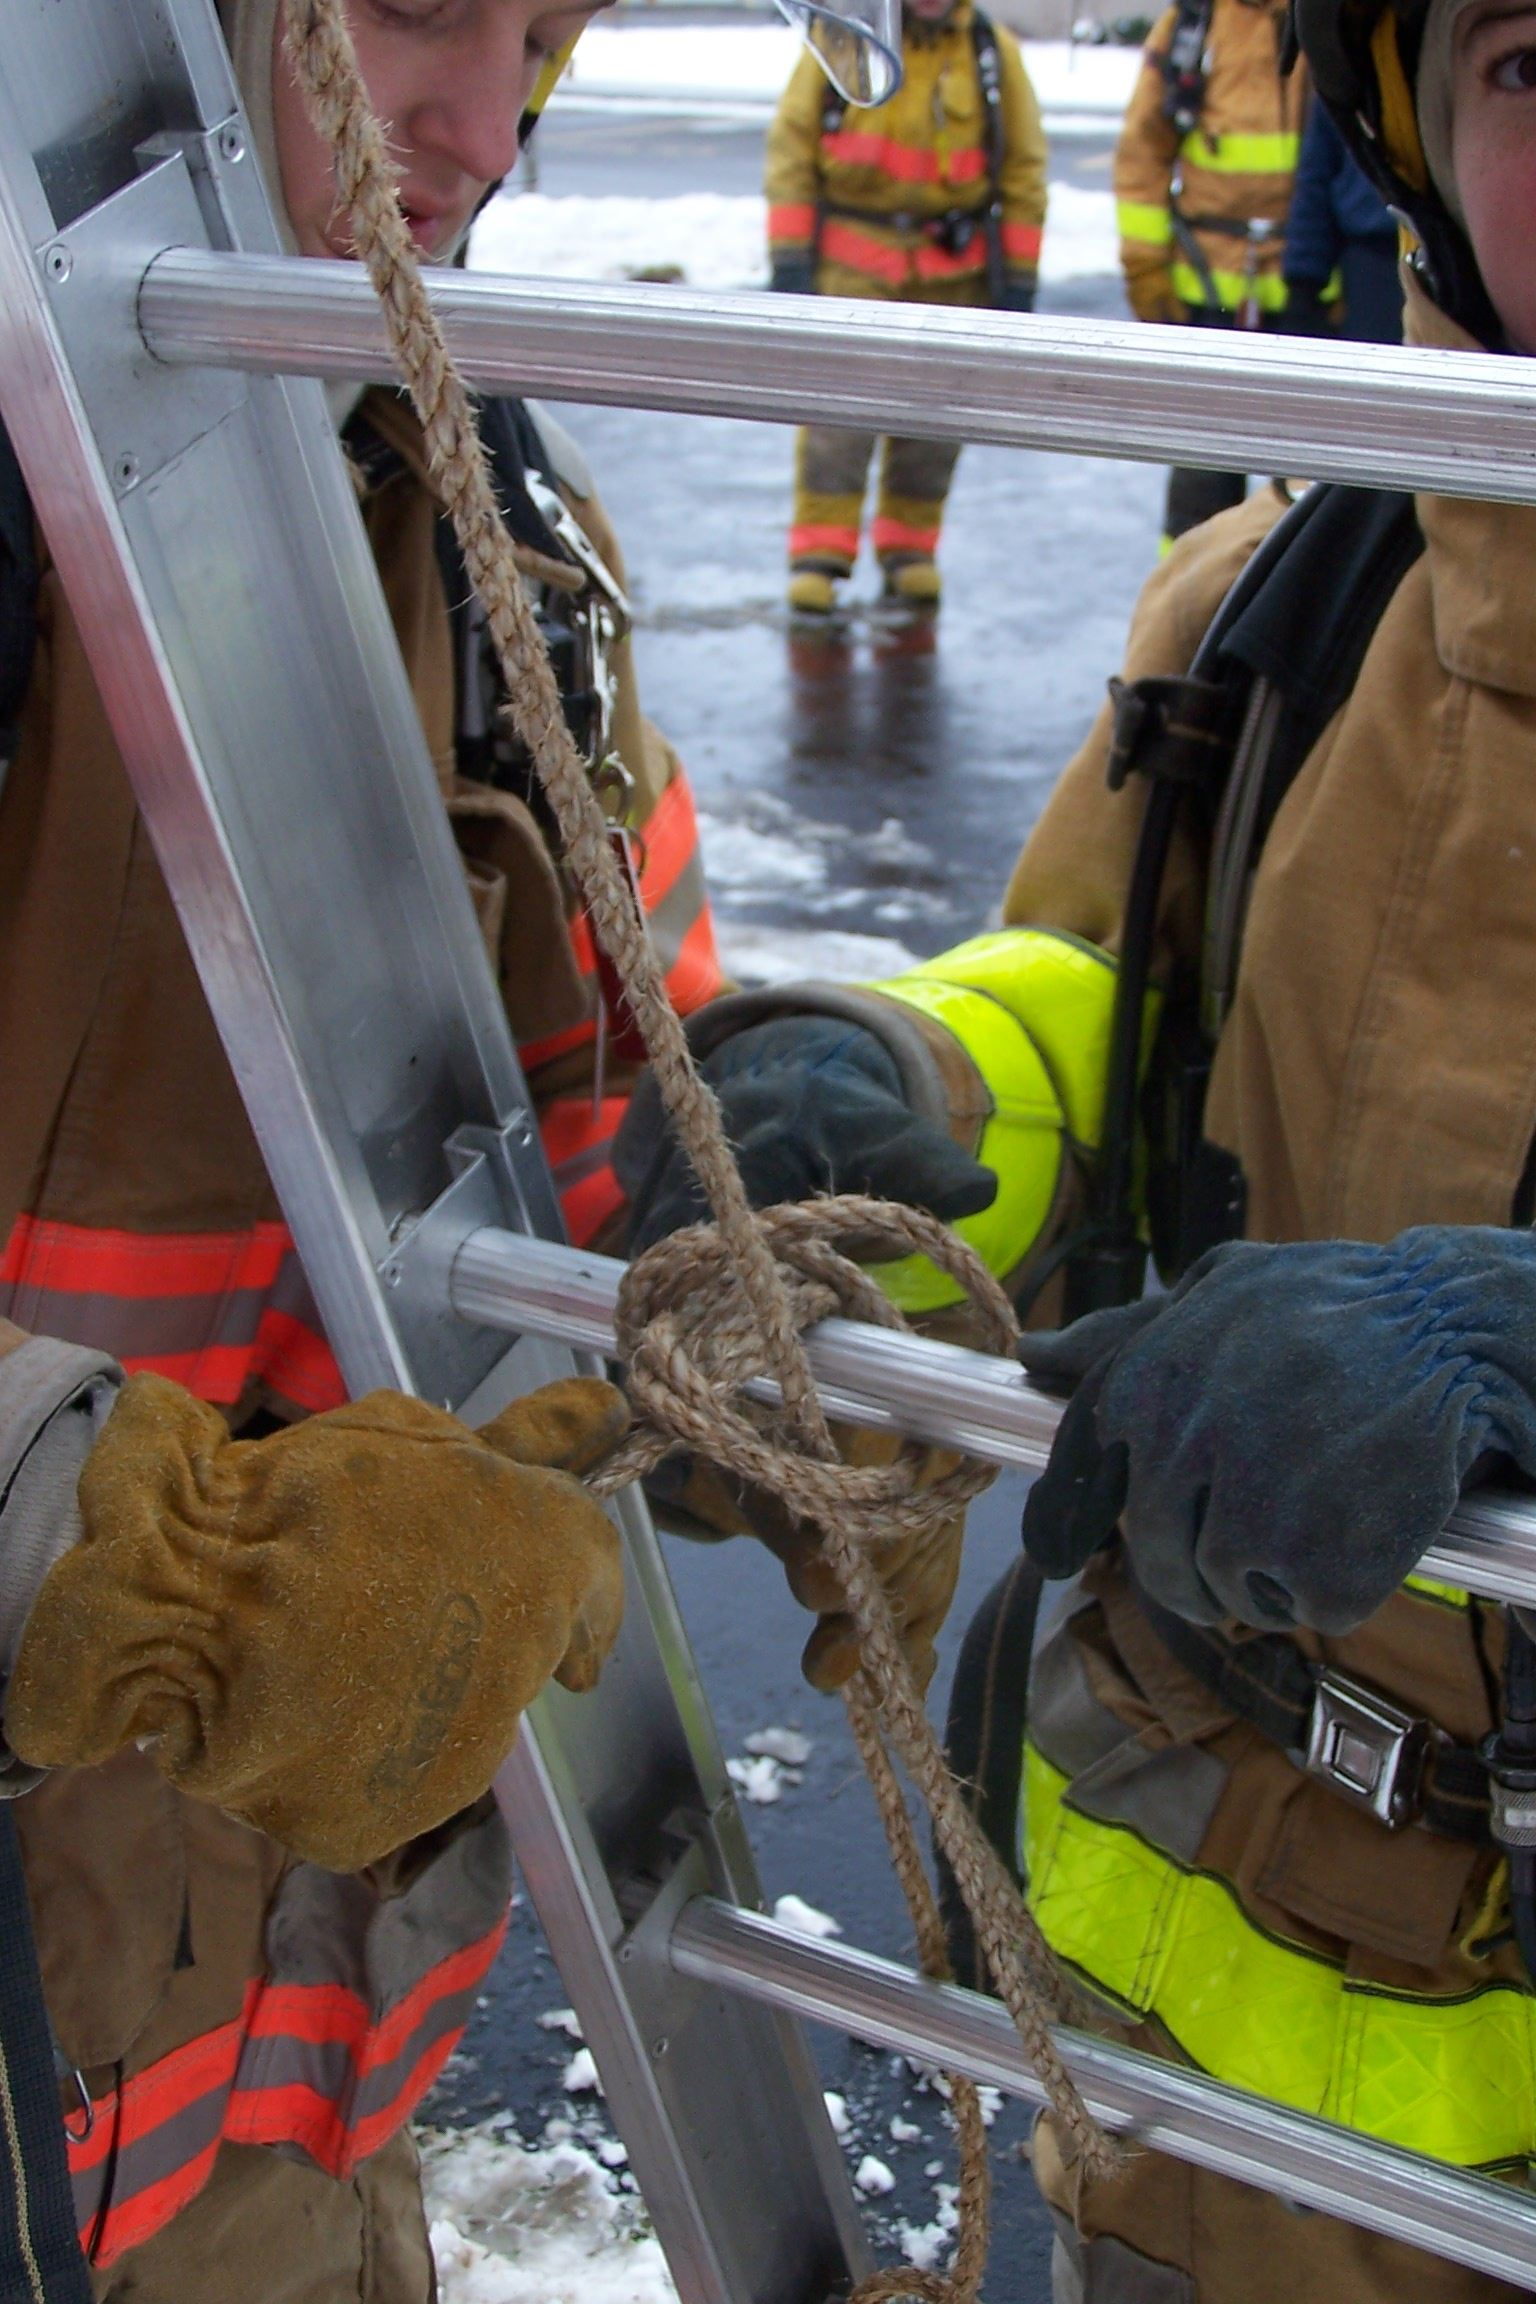 A firefighter ties a knot in a rope around a ladder while another firefighter observes.